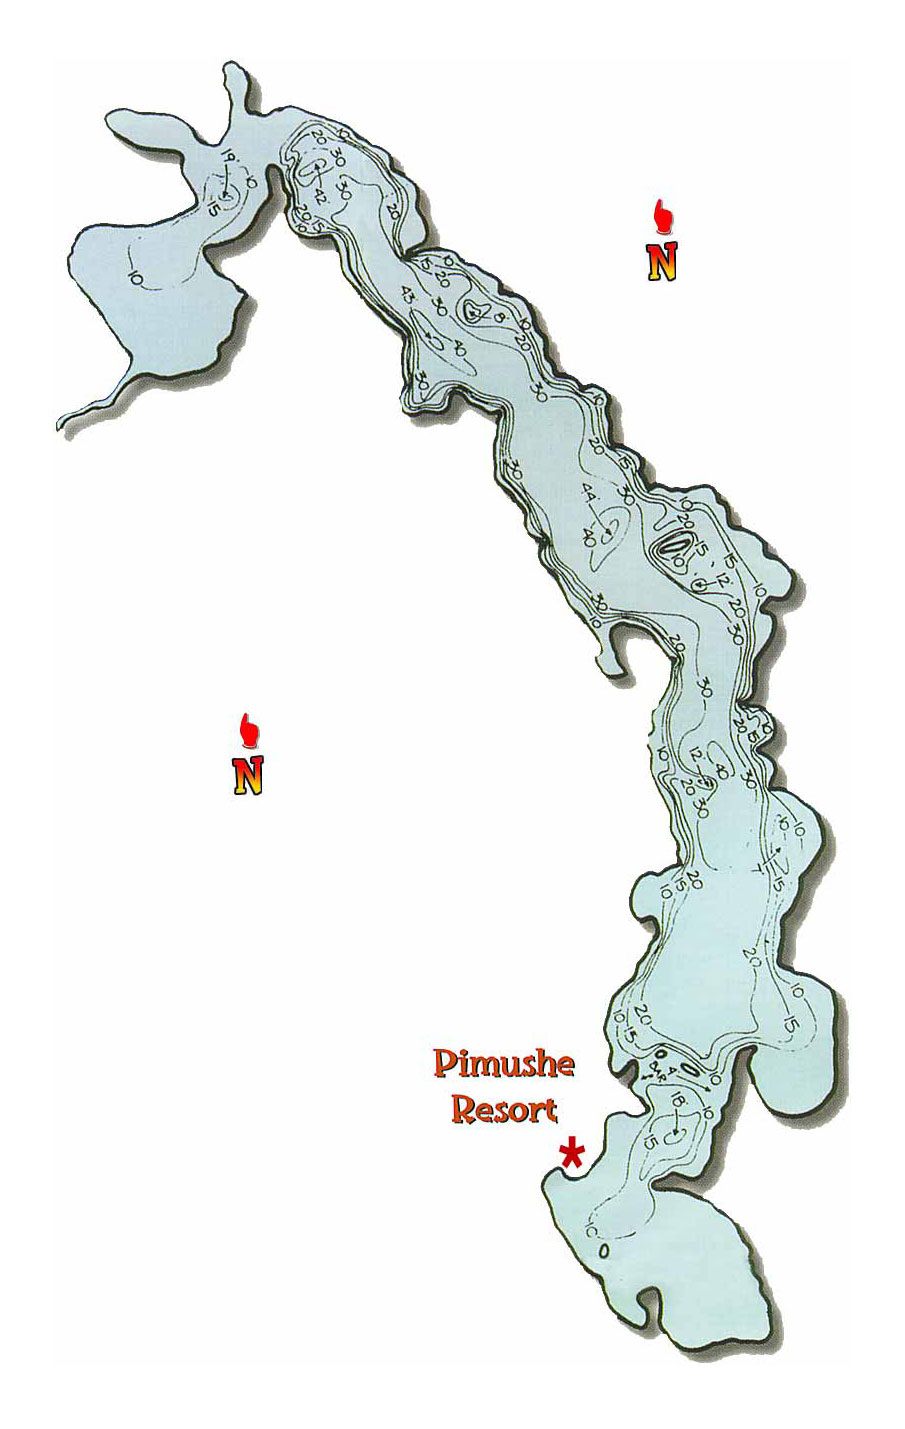 Pimushe Lake map